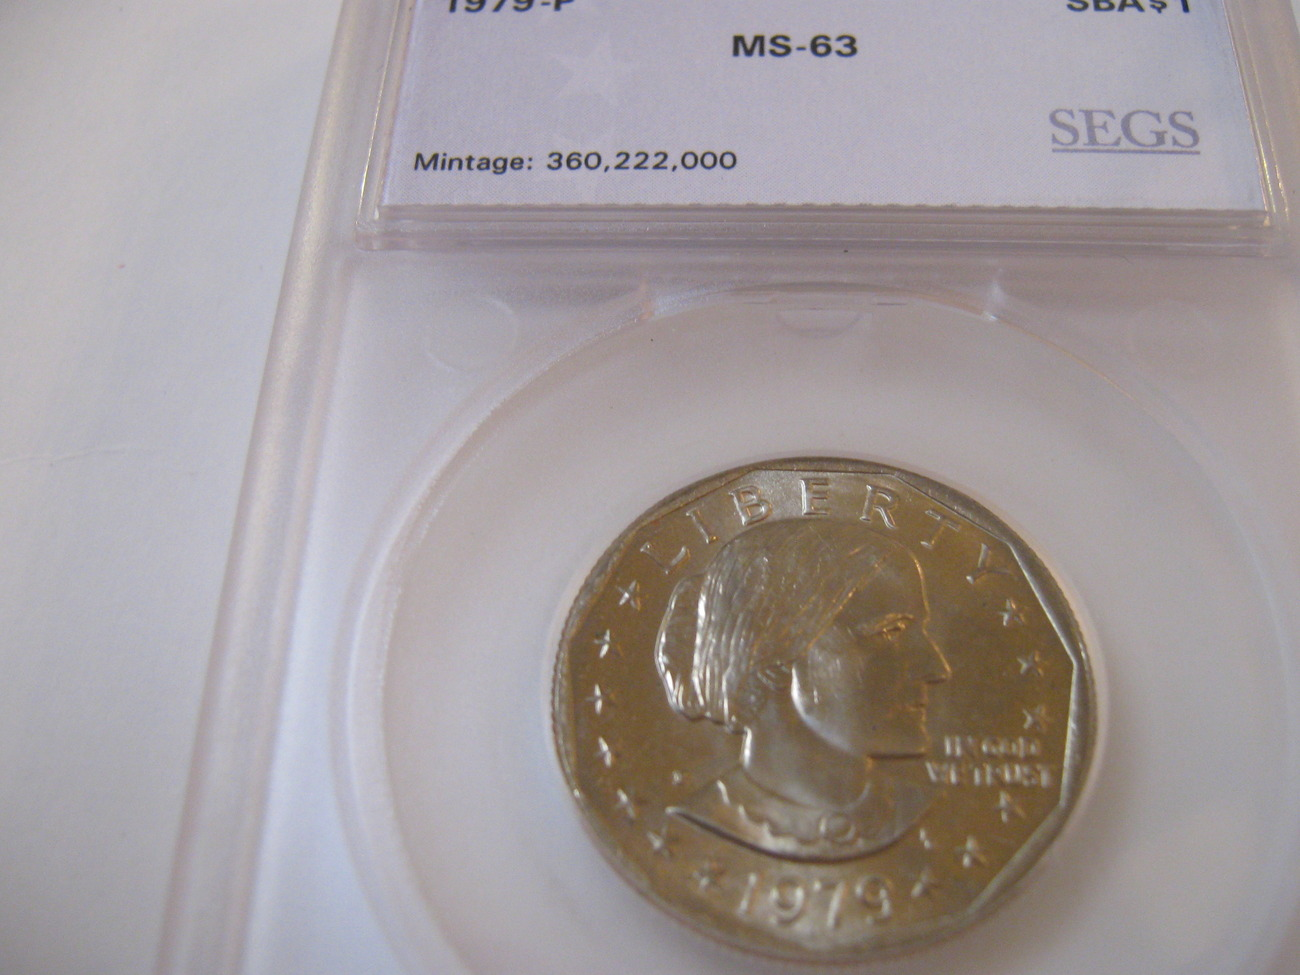 Primary image for 1979-P , Susan B. Anthony Dollar  , Beautiful Coin , SEGS , MS-63